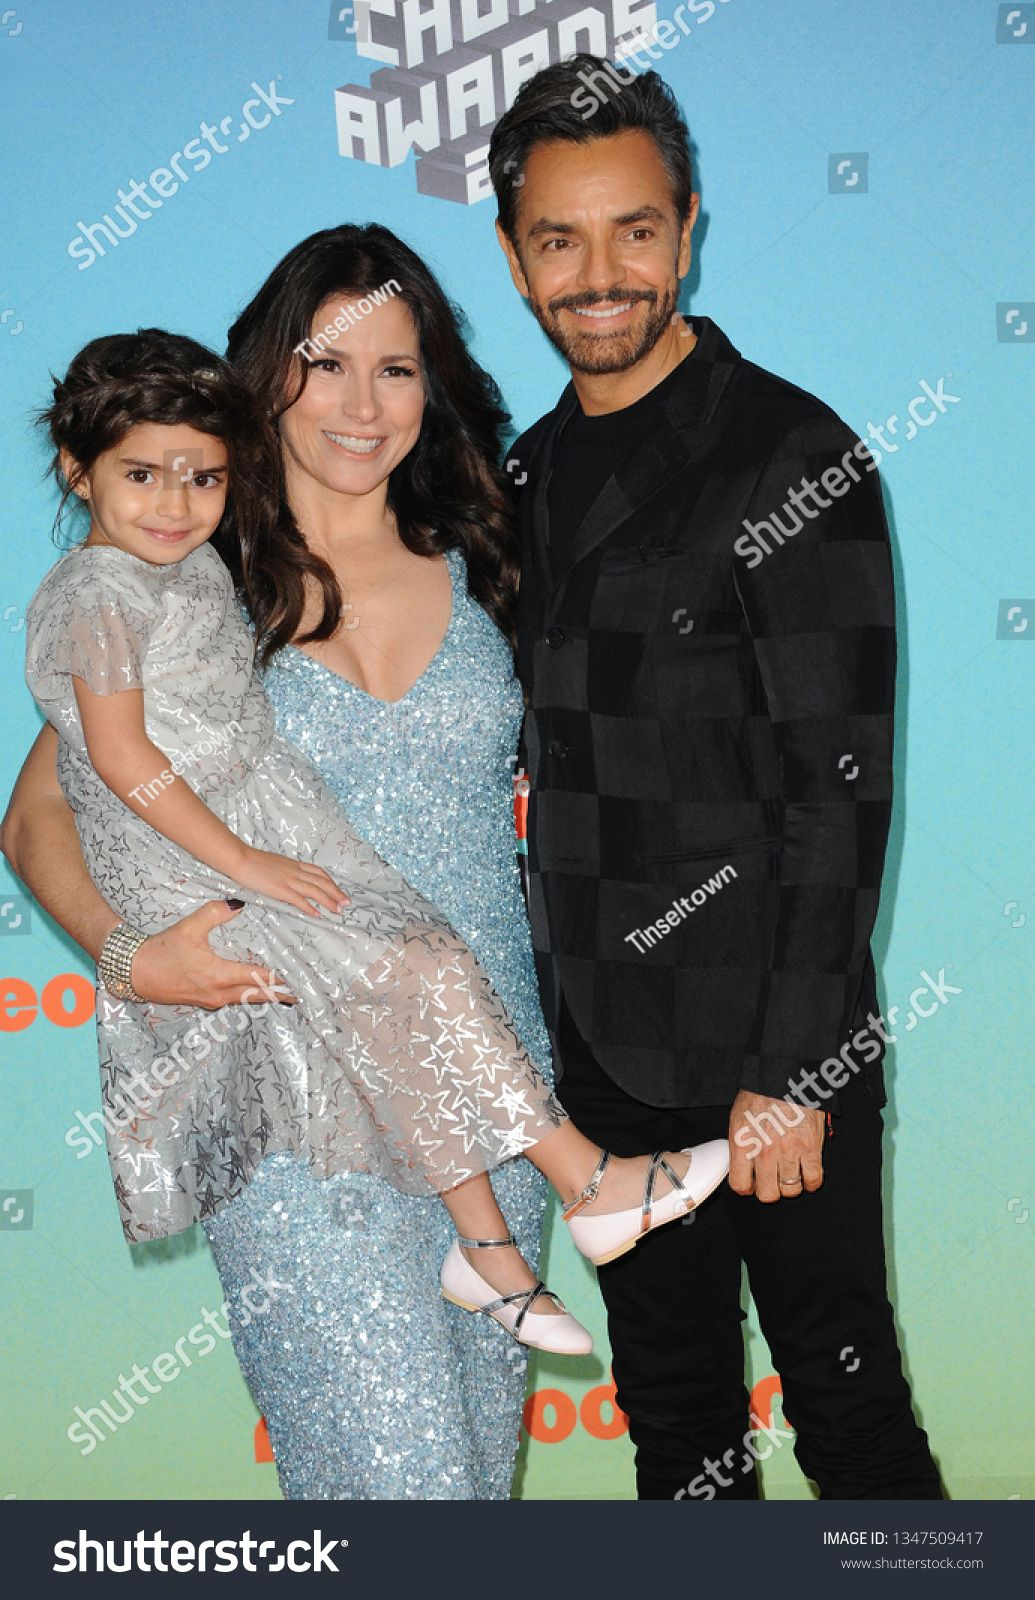 Alessandra Rosaldo And Eugenio Derbez At The Nickelodeon S 2019 Kids Choice Awards Held At The Galen Center In Los An Kids Choice Award Nickelodeon Alessandra